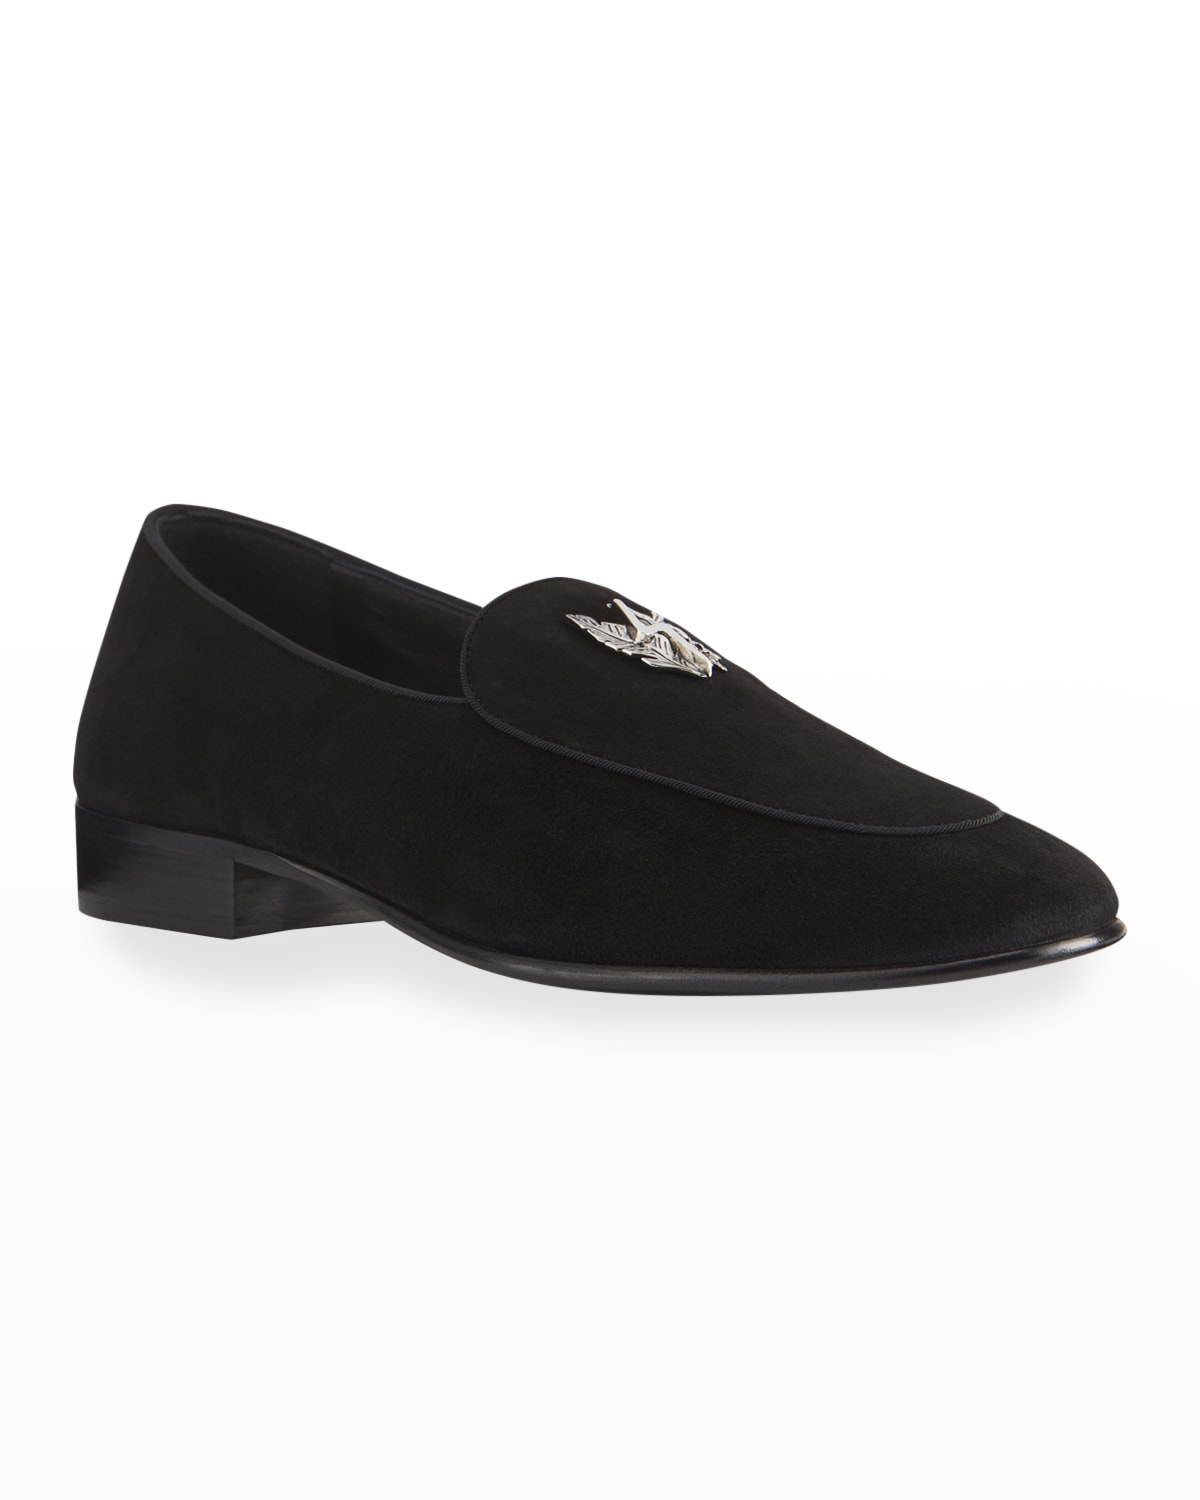 Men's Cut 15 Sacchetto Suede Loafers